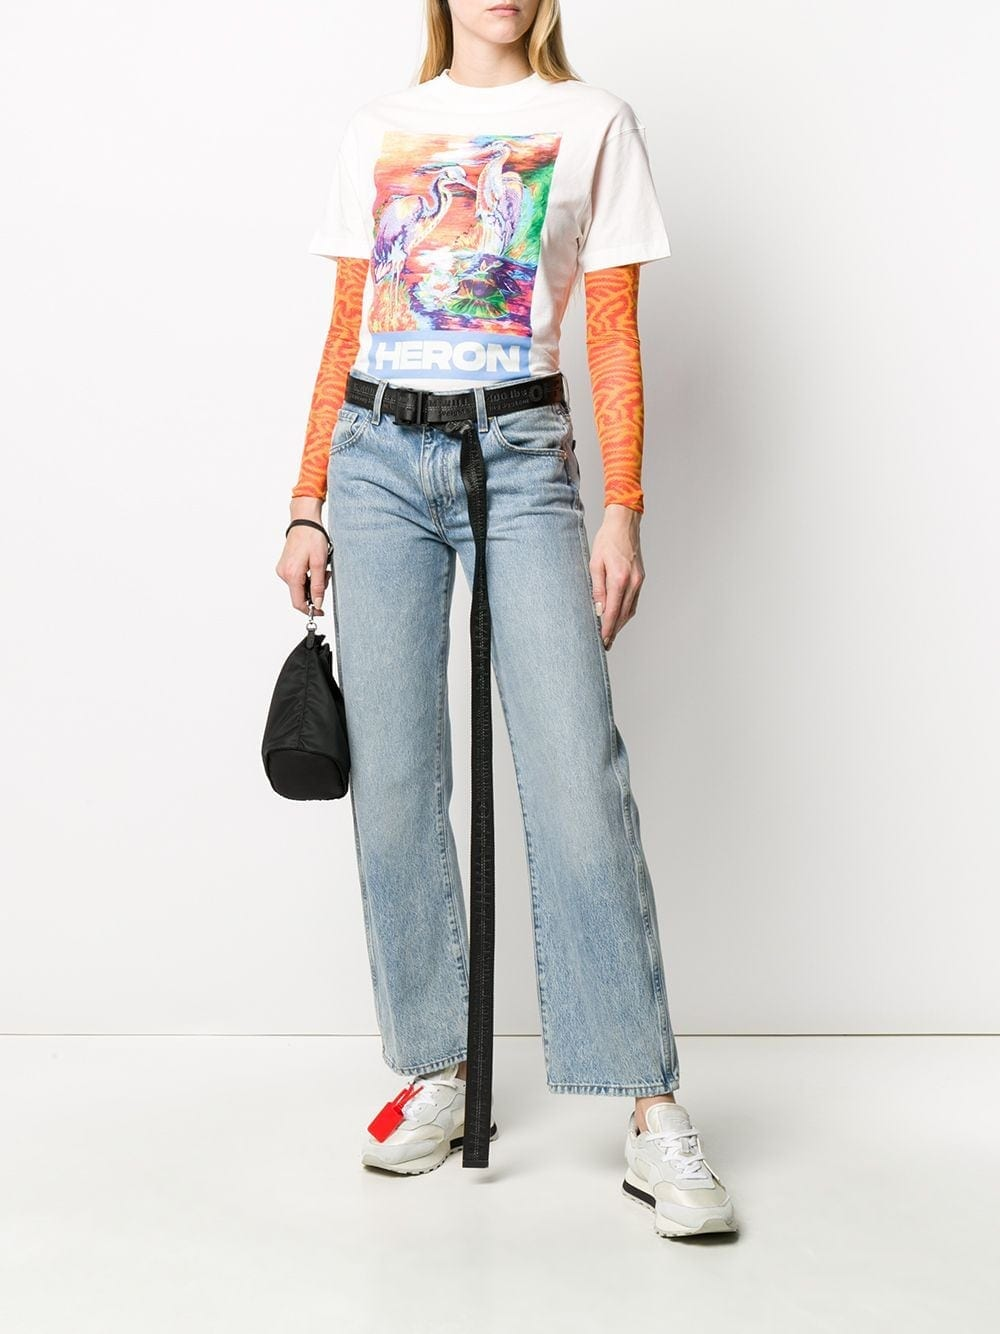 Farfetch: Up to 50% off select Heron Preston styles